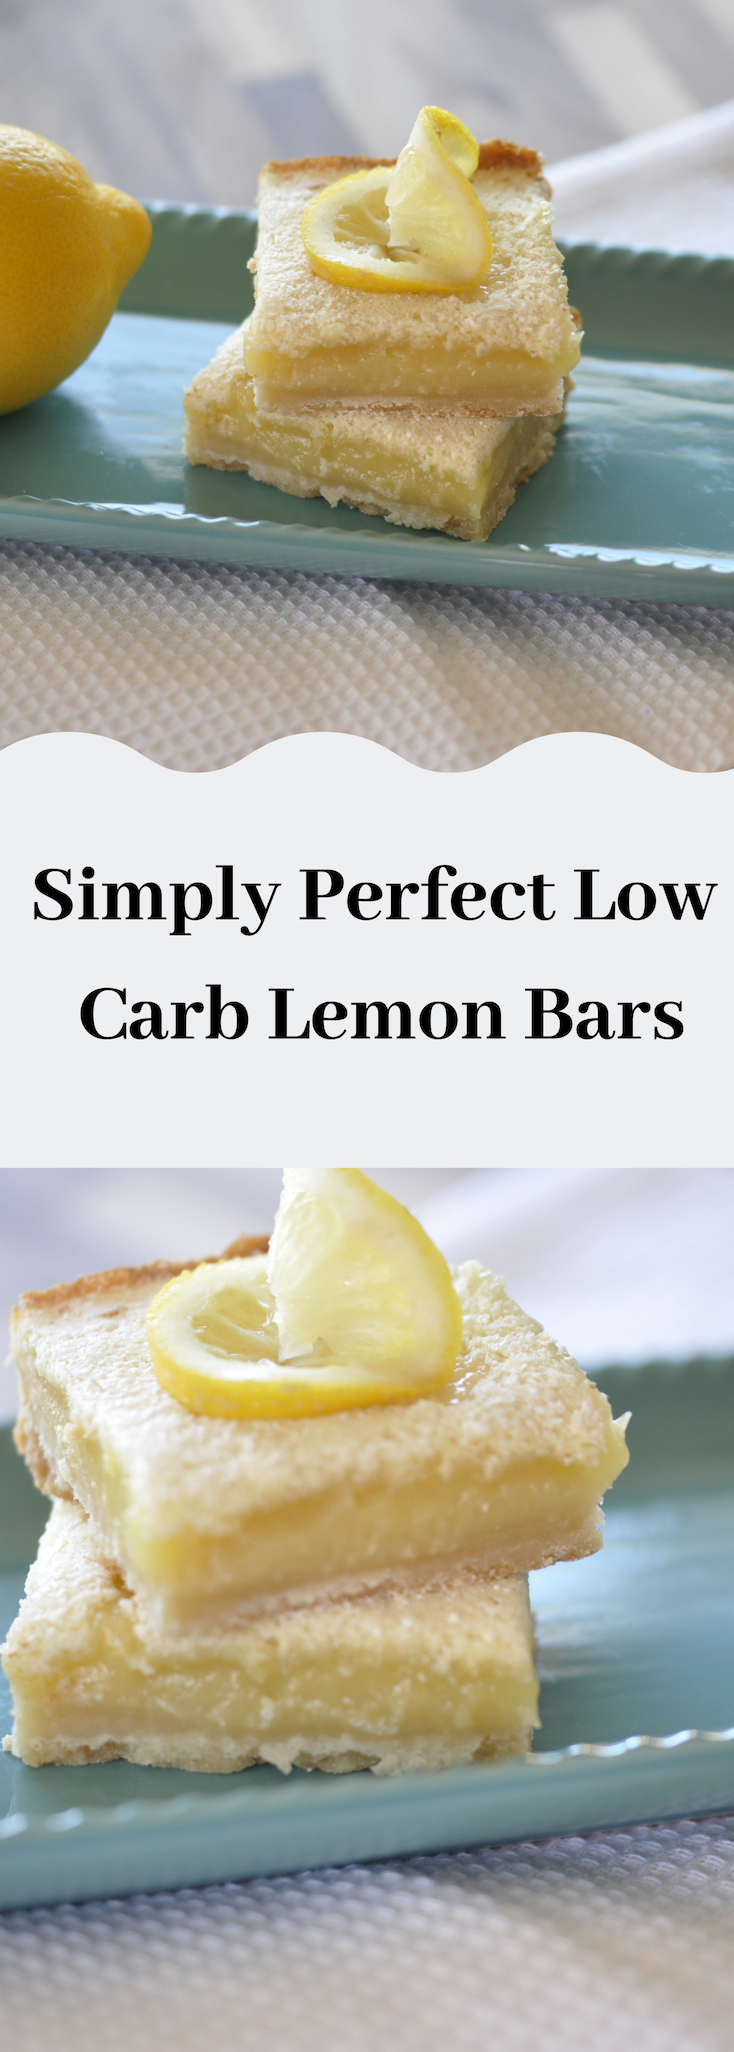 Simply Perfect Low Carb Lemon Bars #nocarbdiets